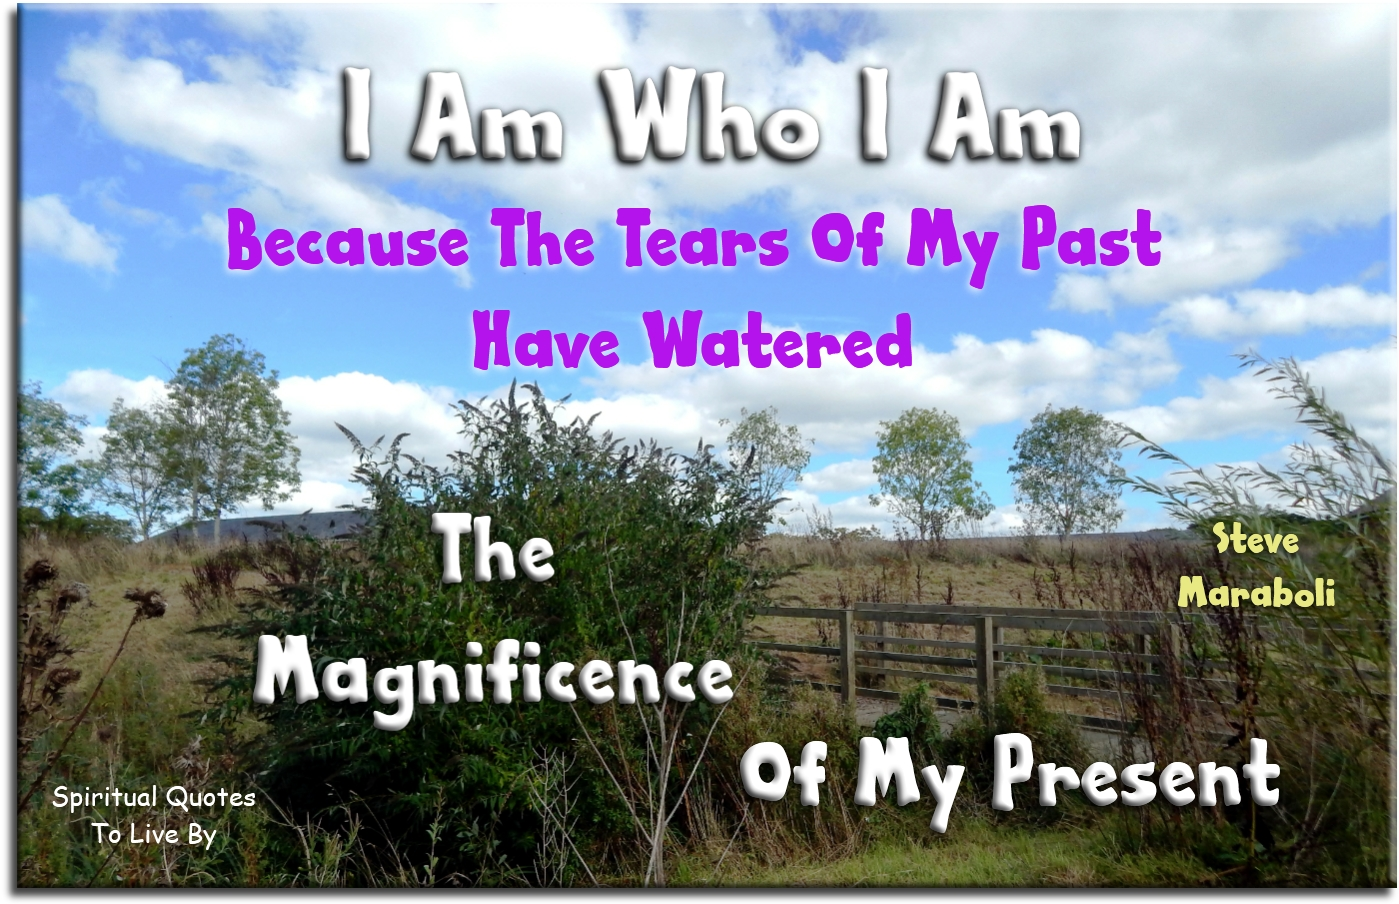 I am who I am because the tears of my past have watered the magnificence of my present - Stever Maraboli - Spiritual Quotes To Live By